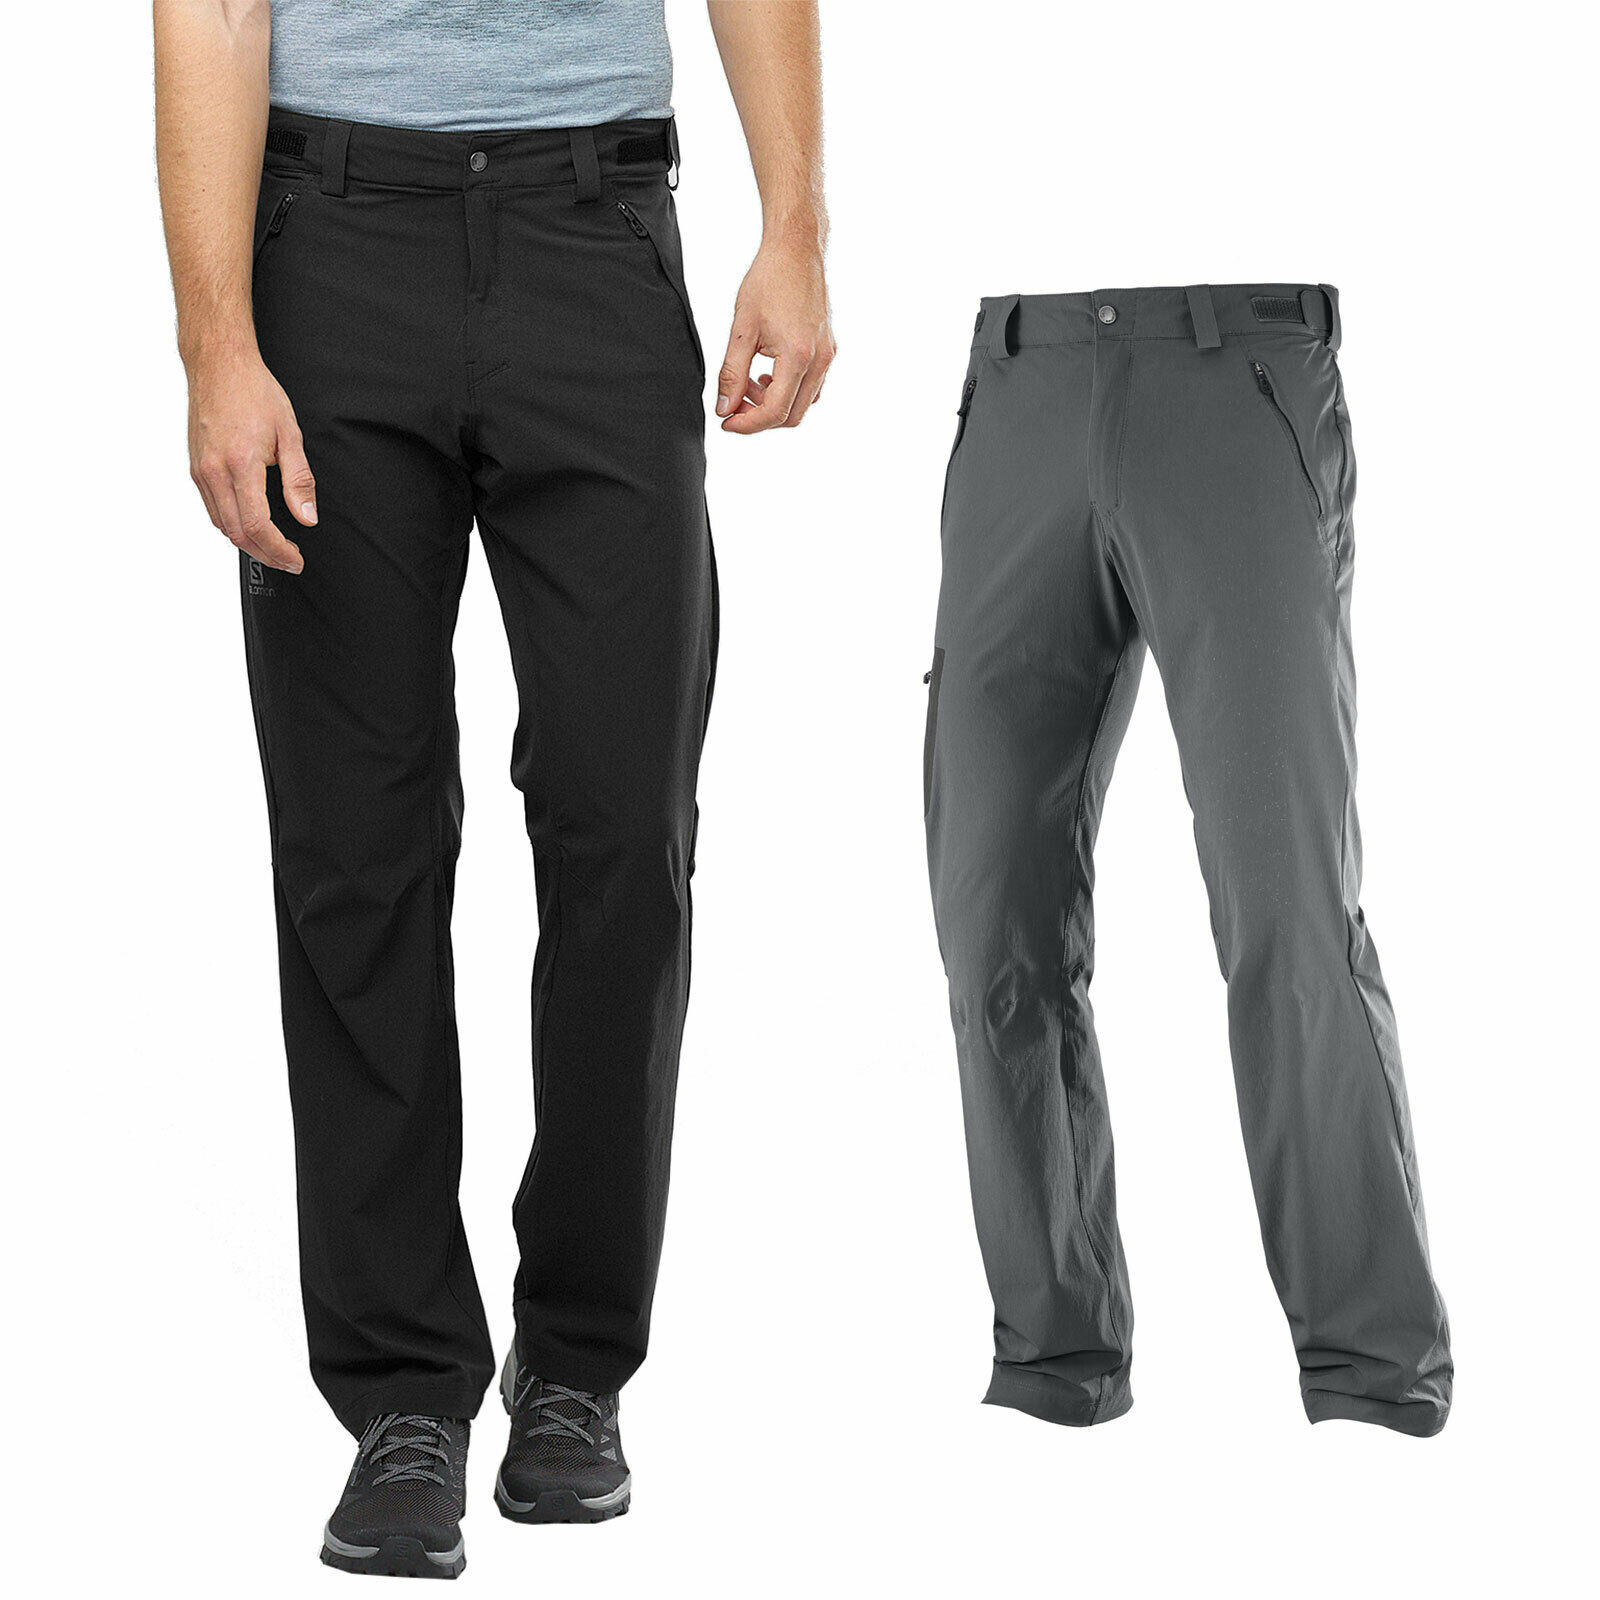 Salomon  Wayfarer Straight Pant Mens Trekking Trousers Hiking Pants outdoorhose  inexpensive